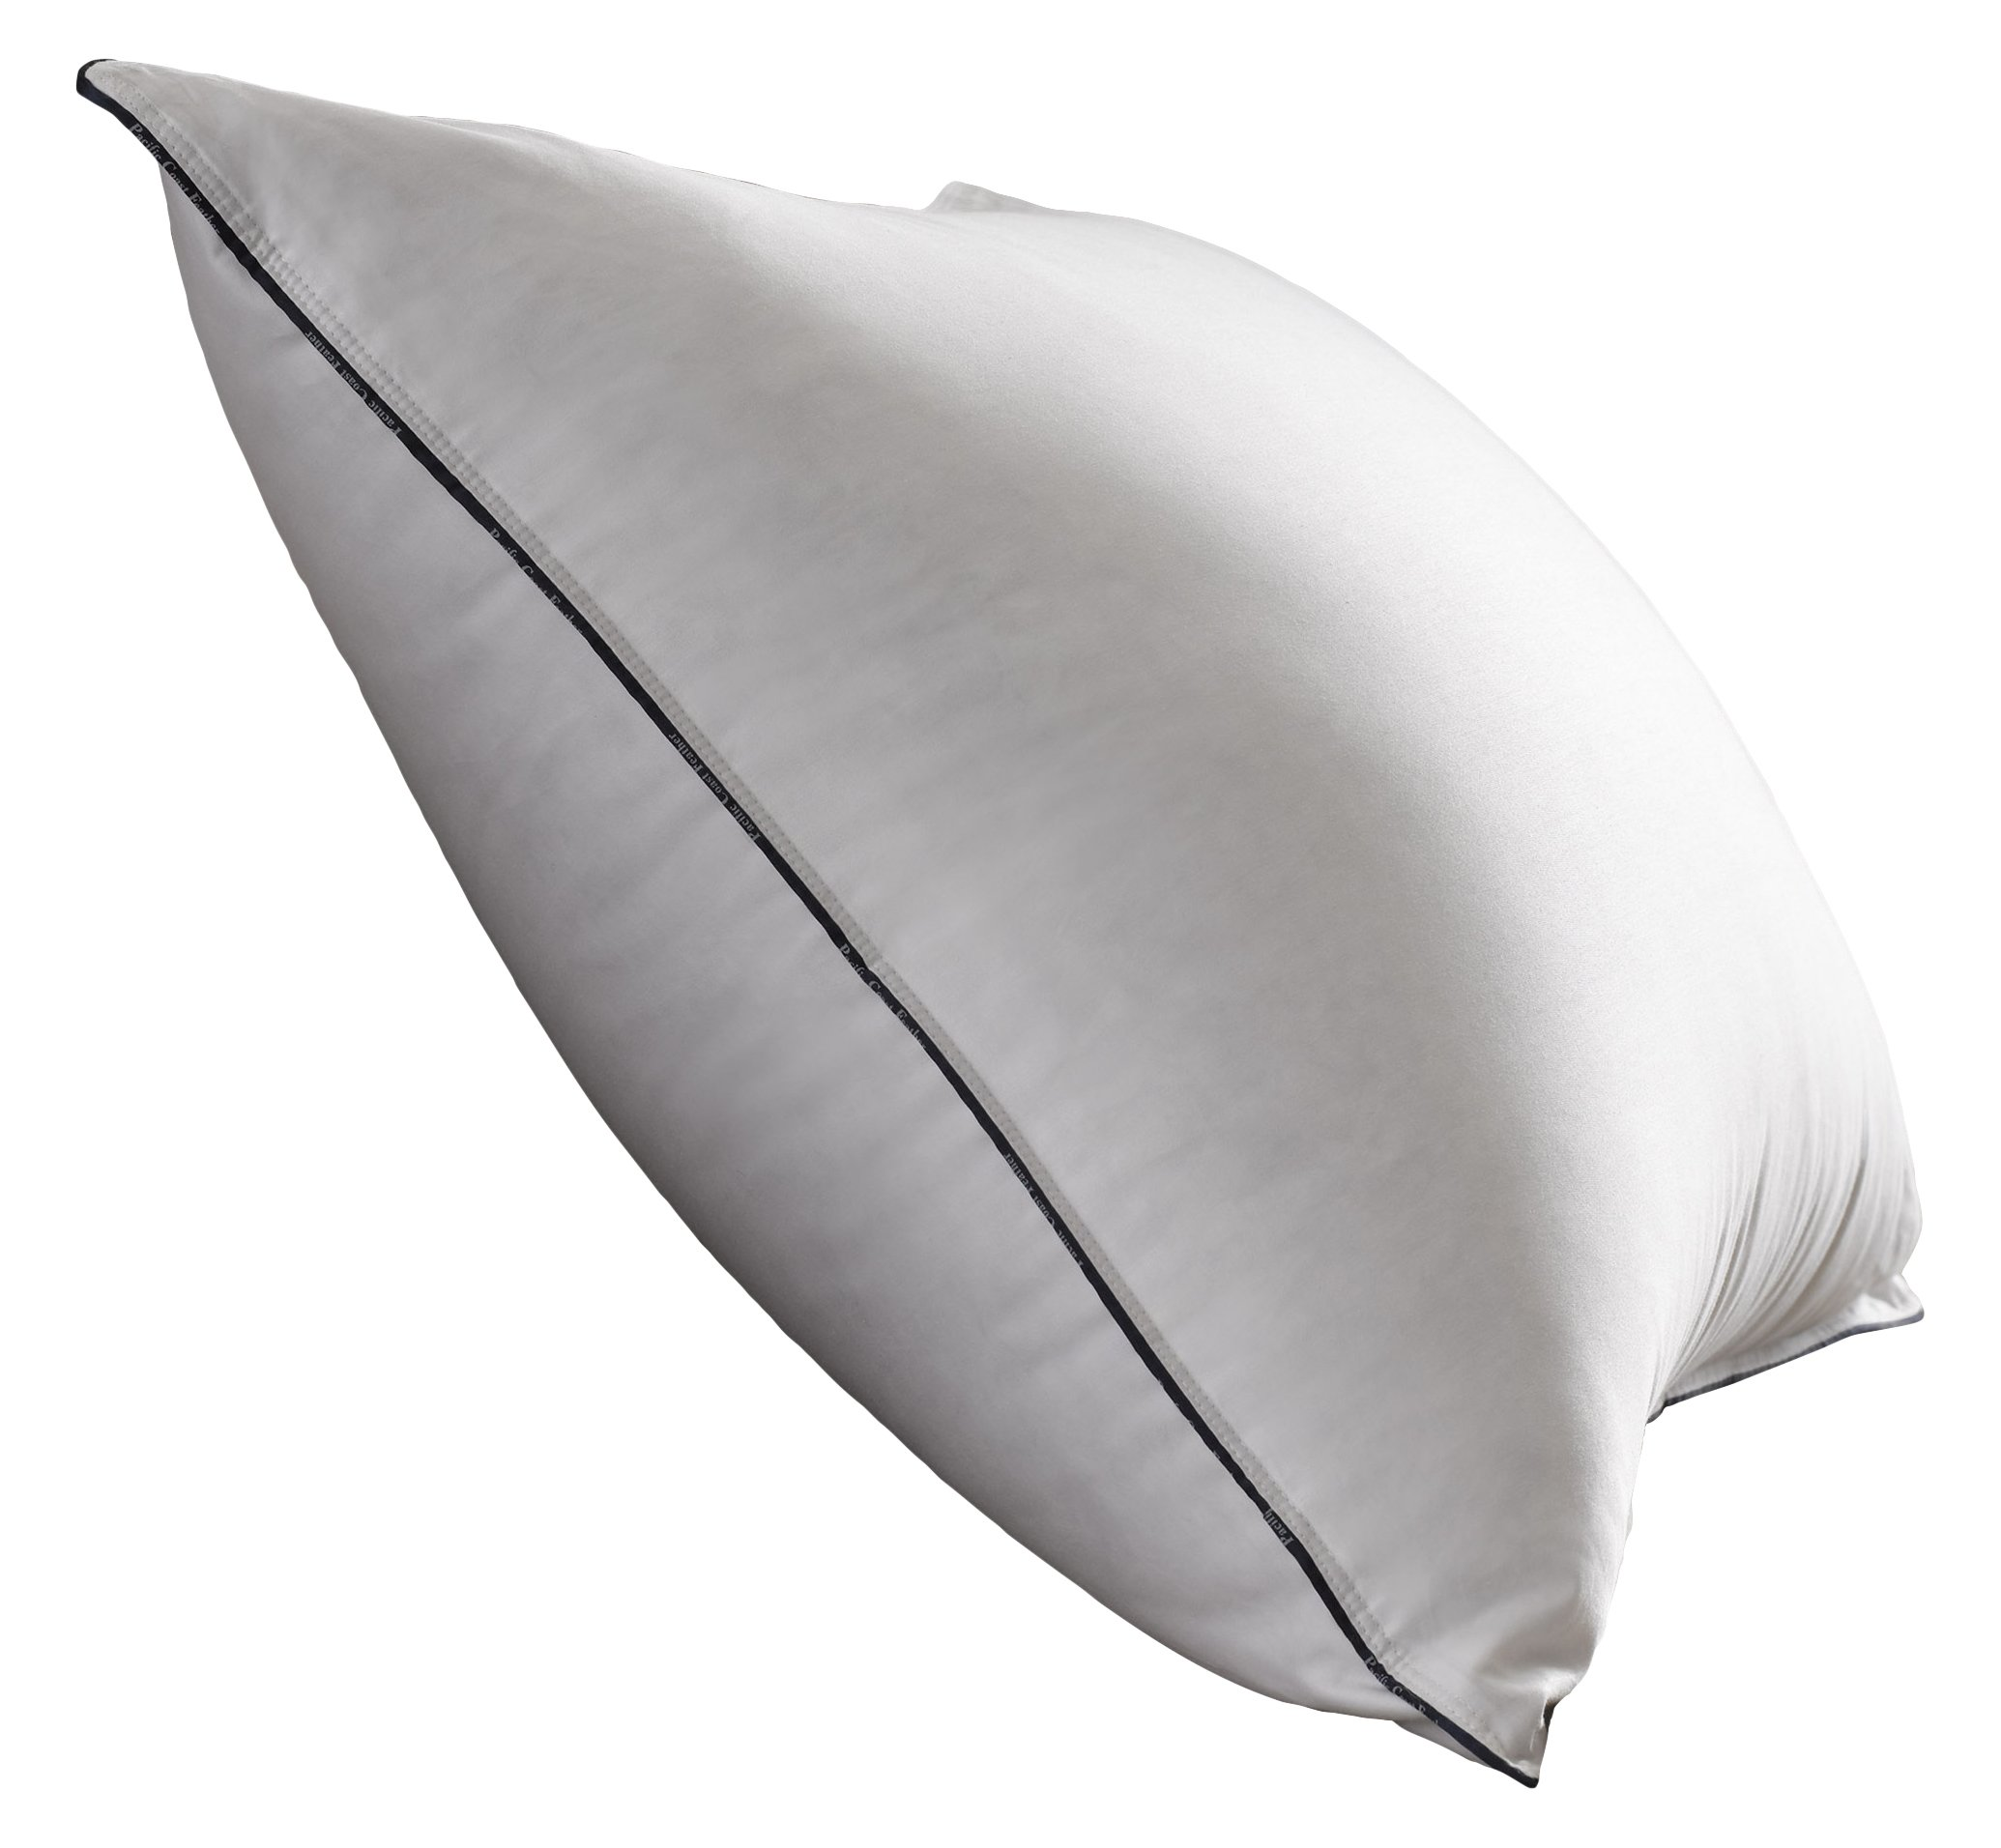 Pacific Coast Feather Around Pacific Coast Double DownAround Down and Feather Pillow with Cotton Cover, Standard, White